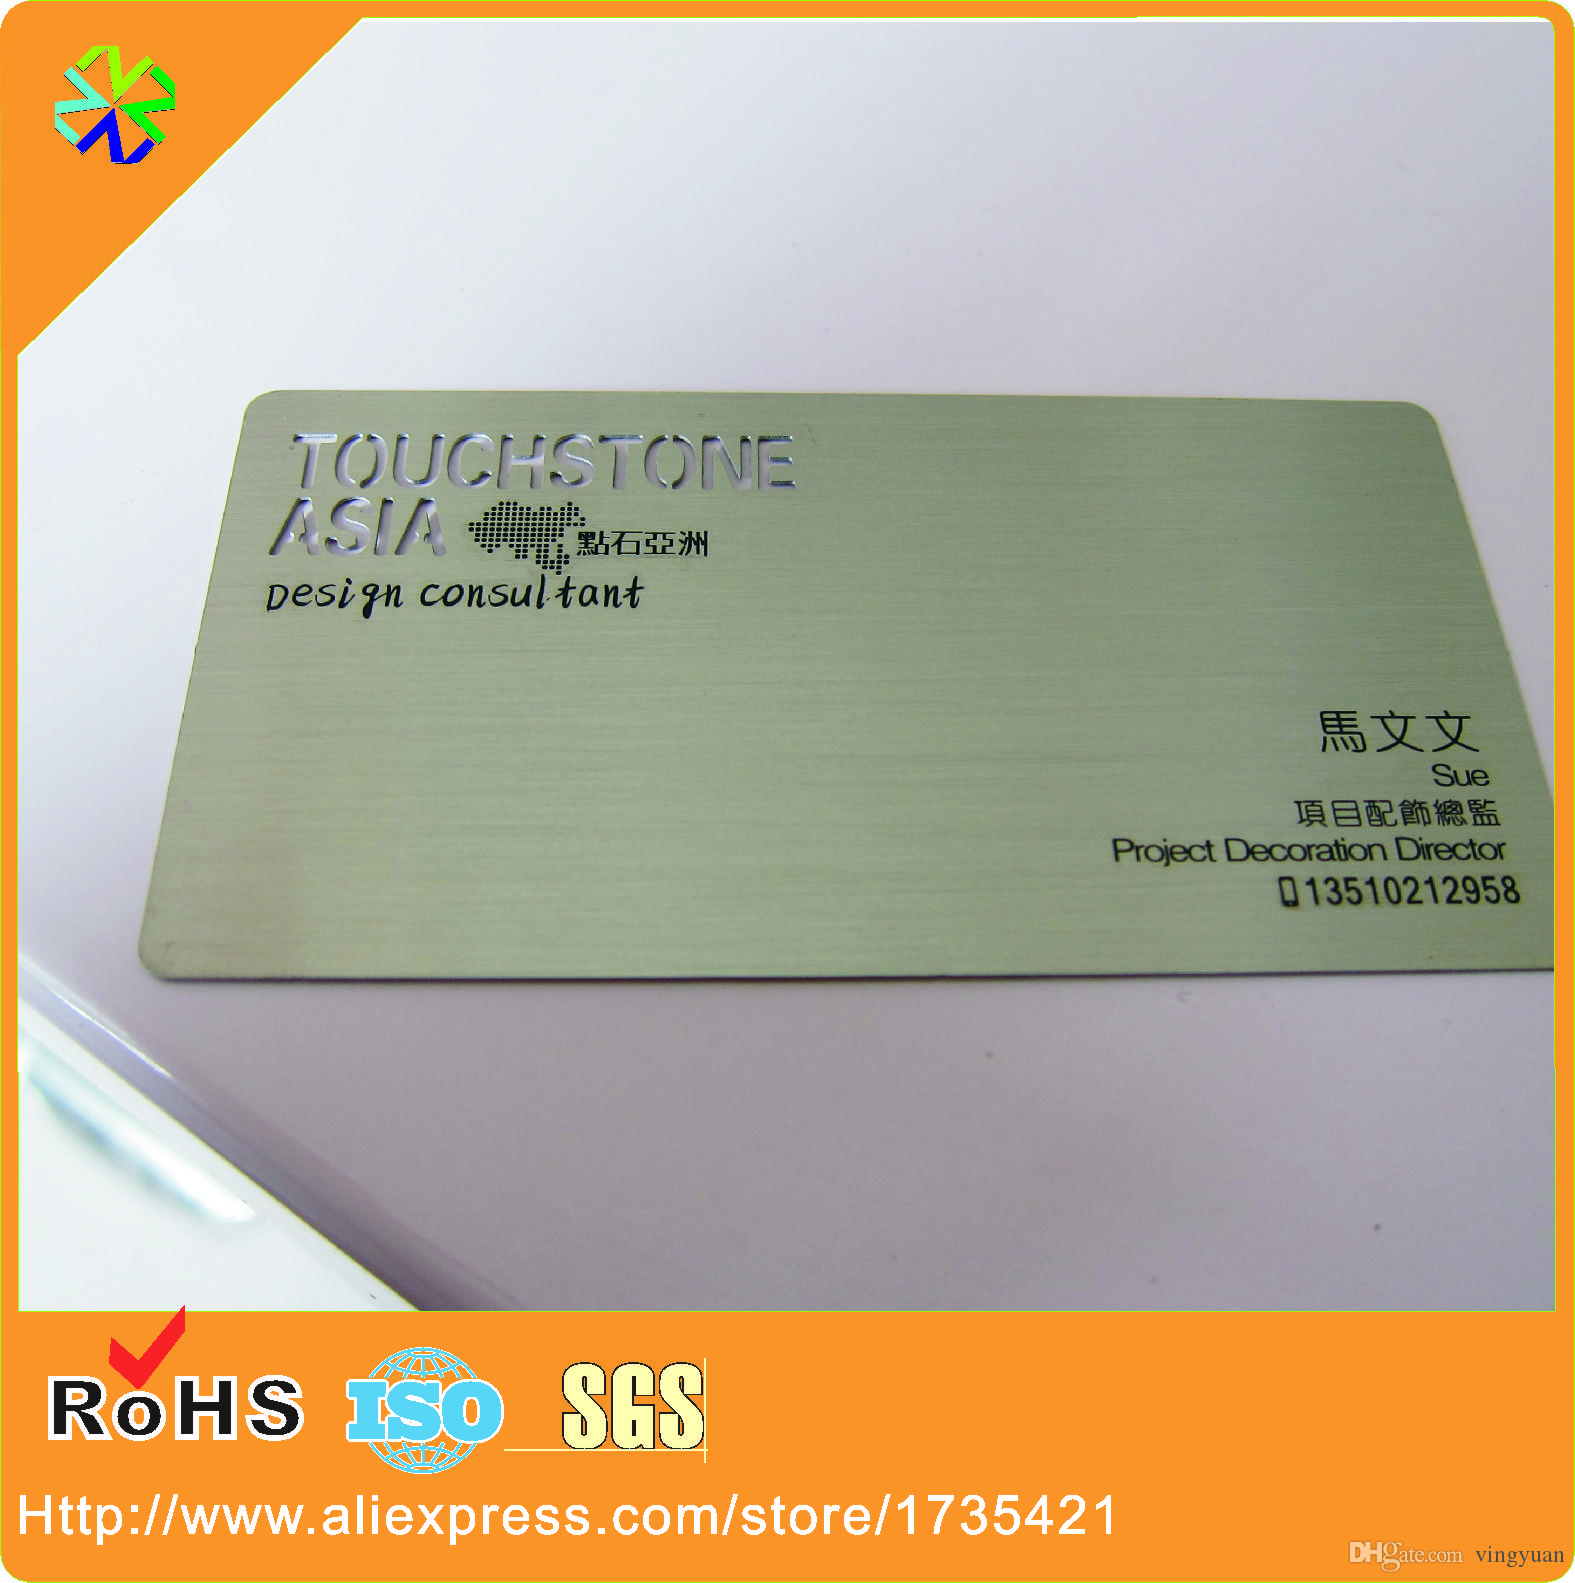 Color printing metal business cardsstainless steel business cards color printing metal business cardsstainless steel business cards metal vip membership card glossy stainless metal business cards stainless metal business reheart Gallery